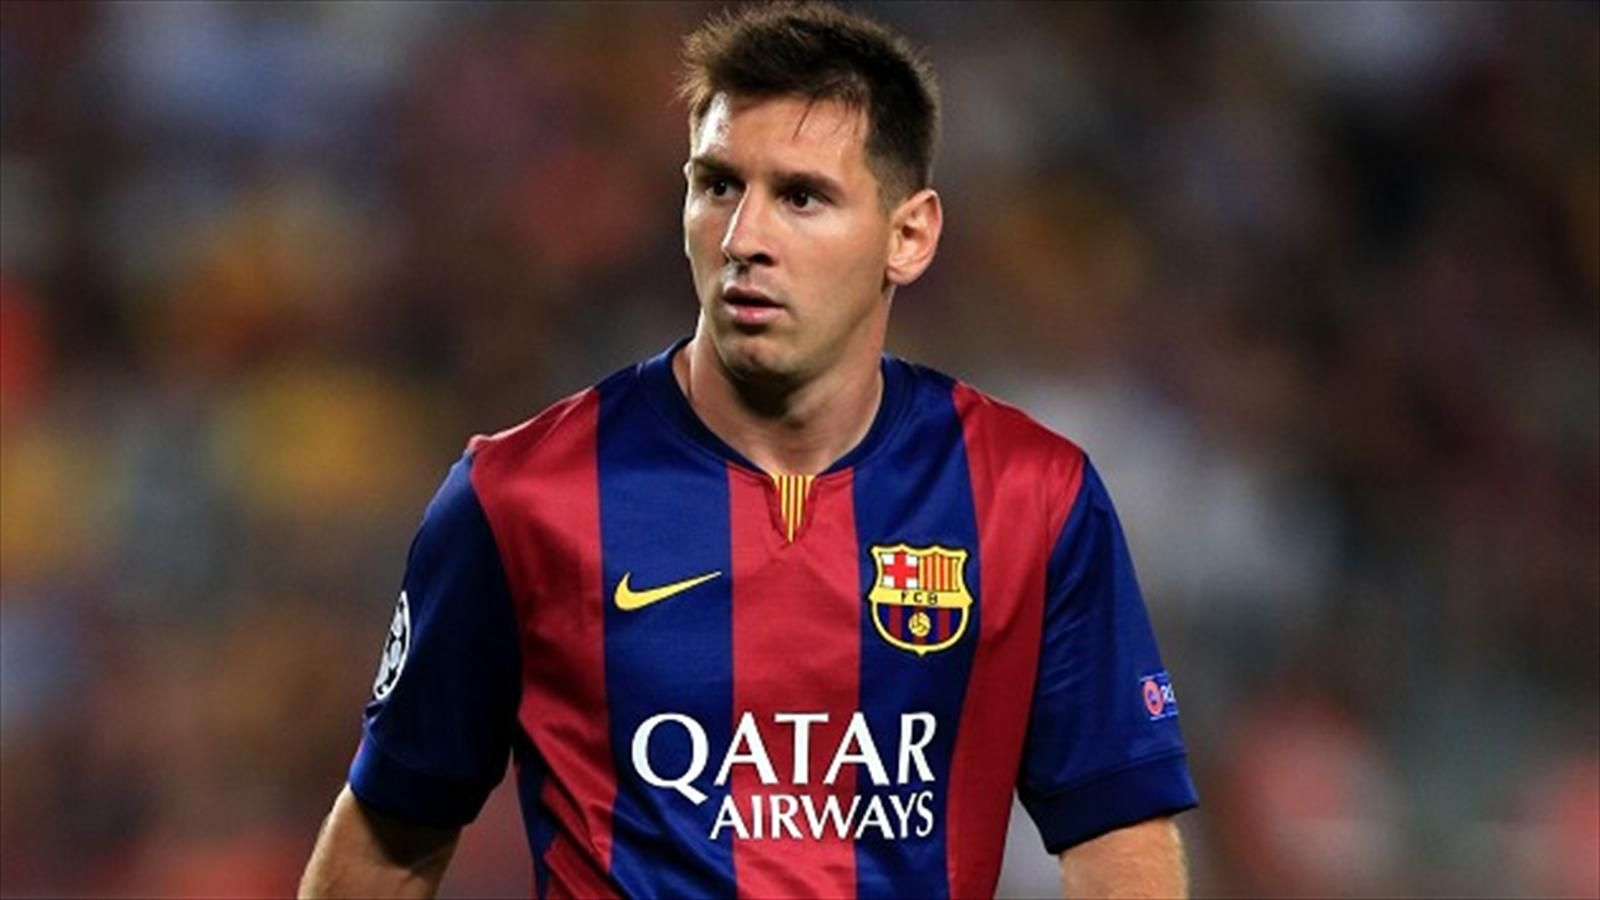 Lionel Messi Wallpaper HD HD Wallpapers Backgrounds Of Your 1080×698 Messi  Hd Wallpaper (